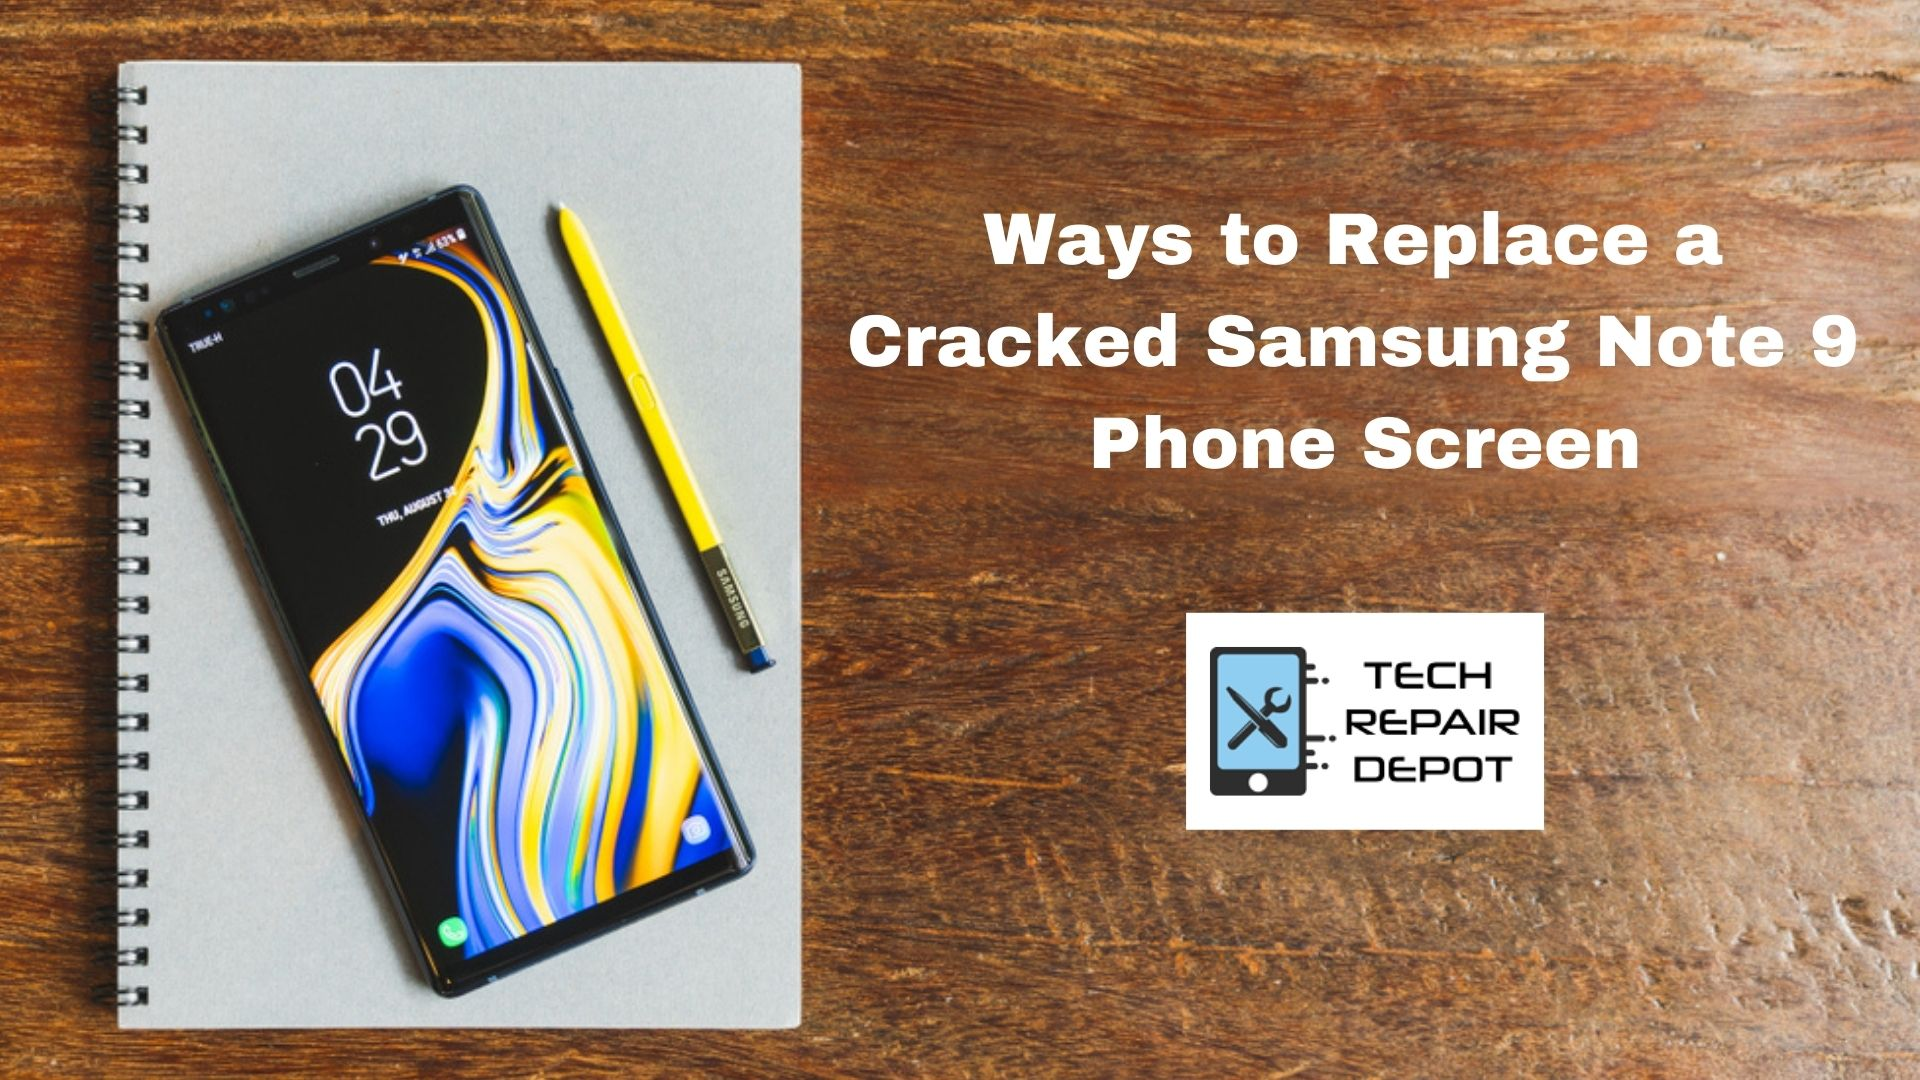 Samsung Note 9 Screen Replacement